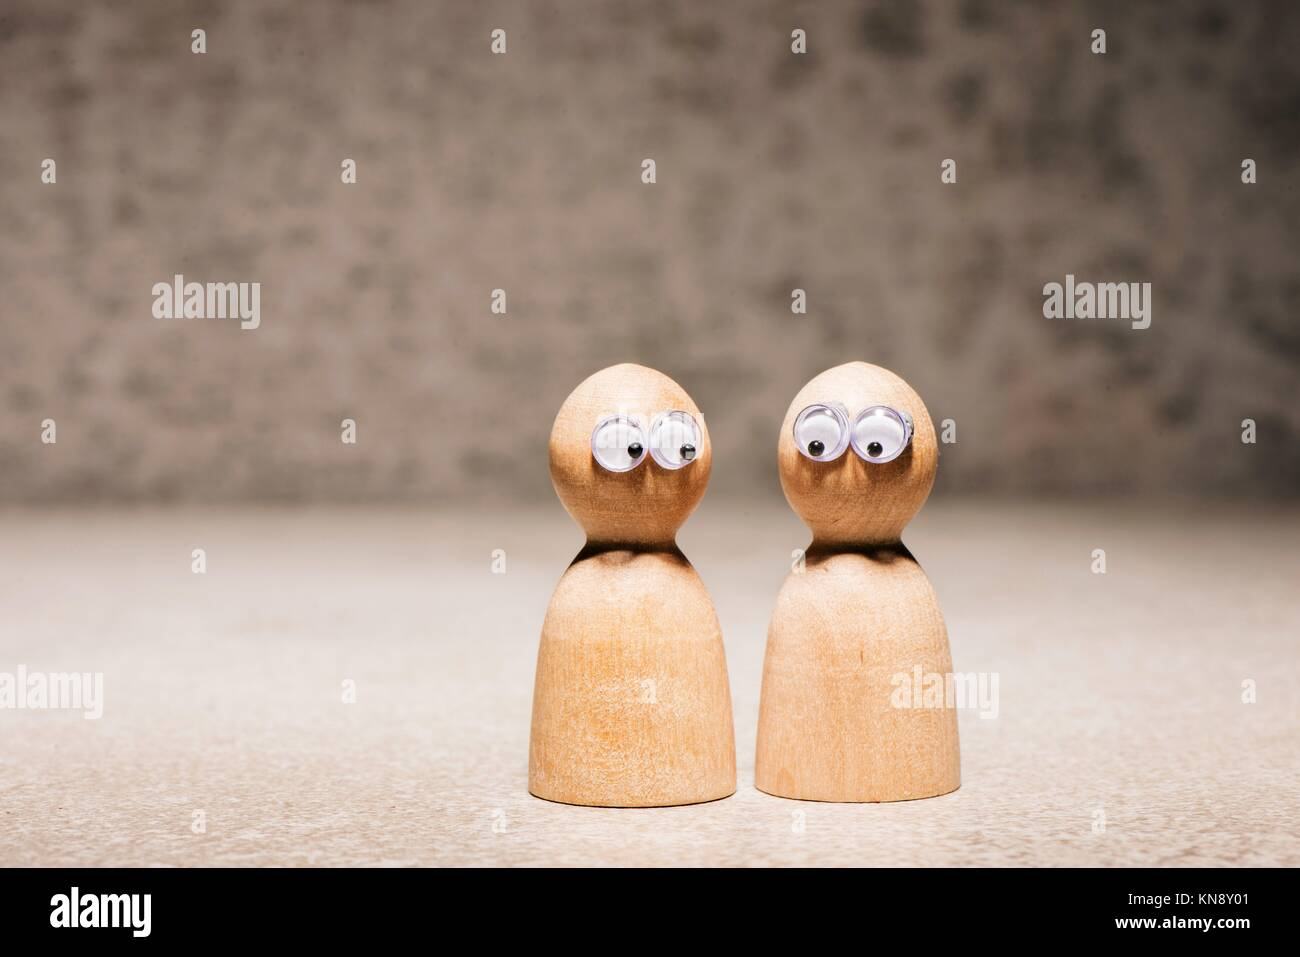 Partnership couple symbol. Concept of relationship problem, worried partner and separation support. - Stock Image